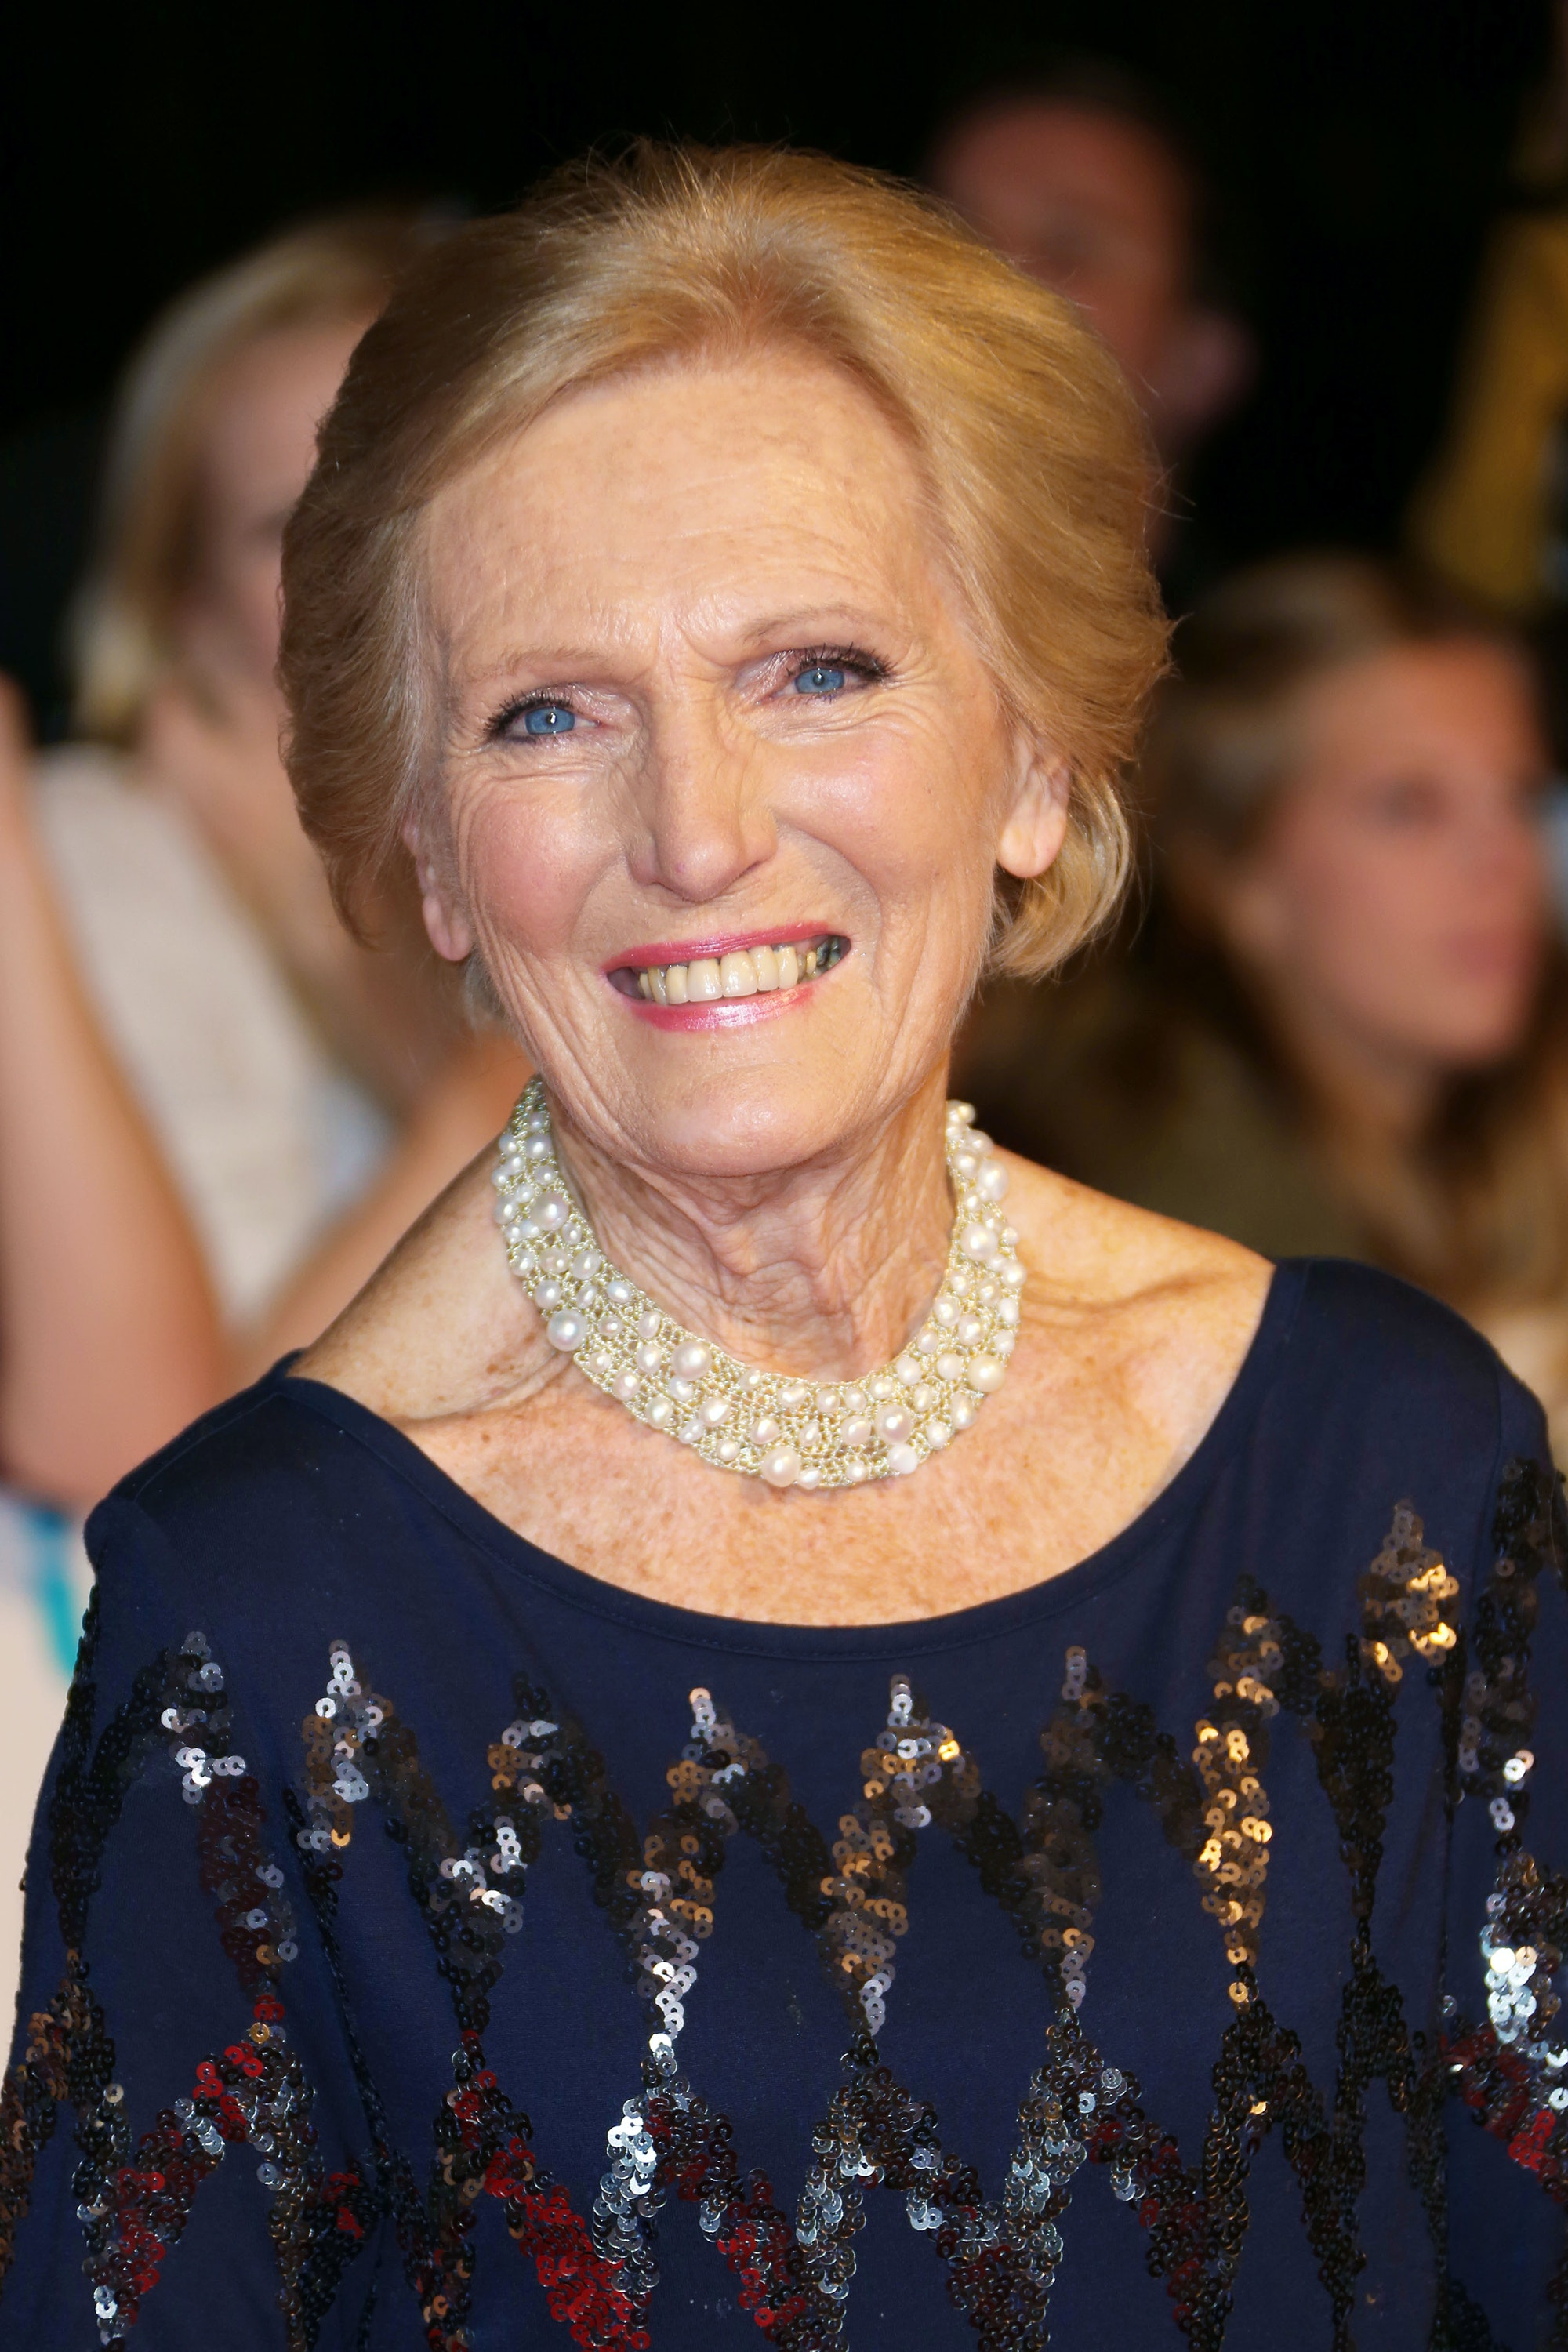 Mary Berry, seen here at The Pride of Britain Awards 2013, will join guests on the Belmond British Pullman train.